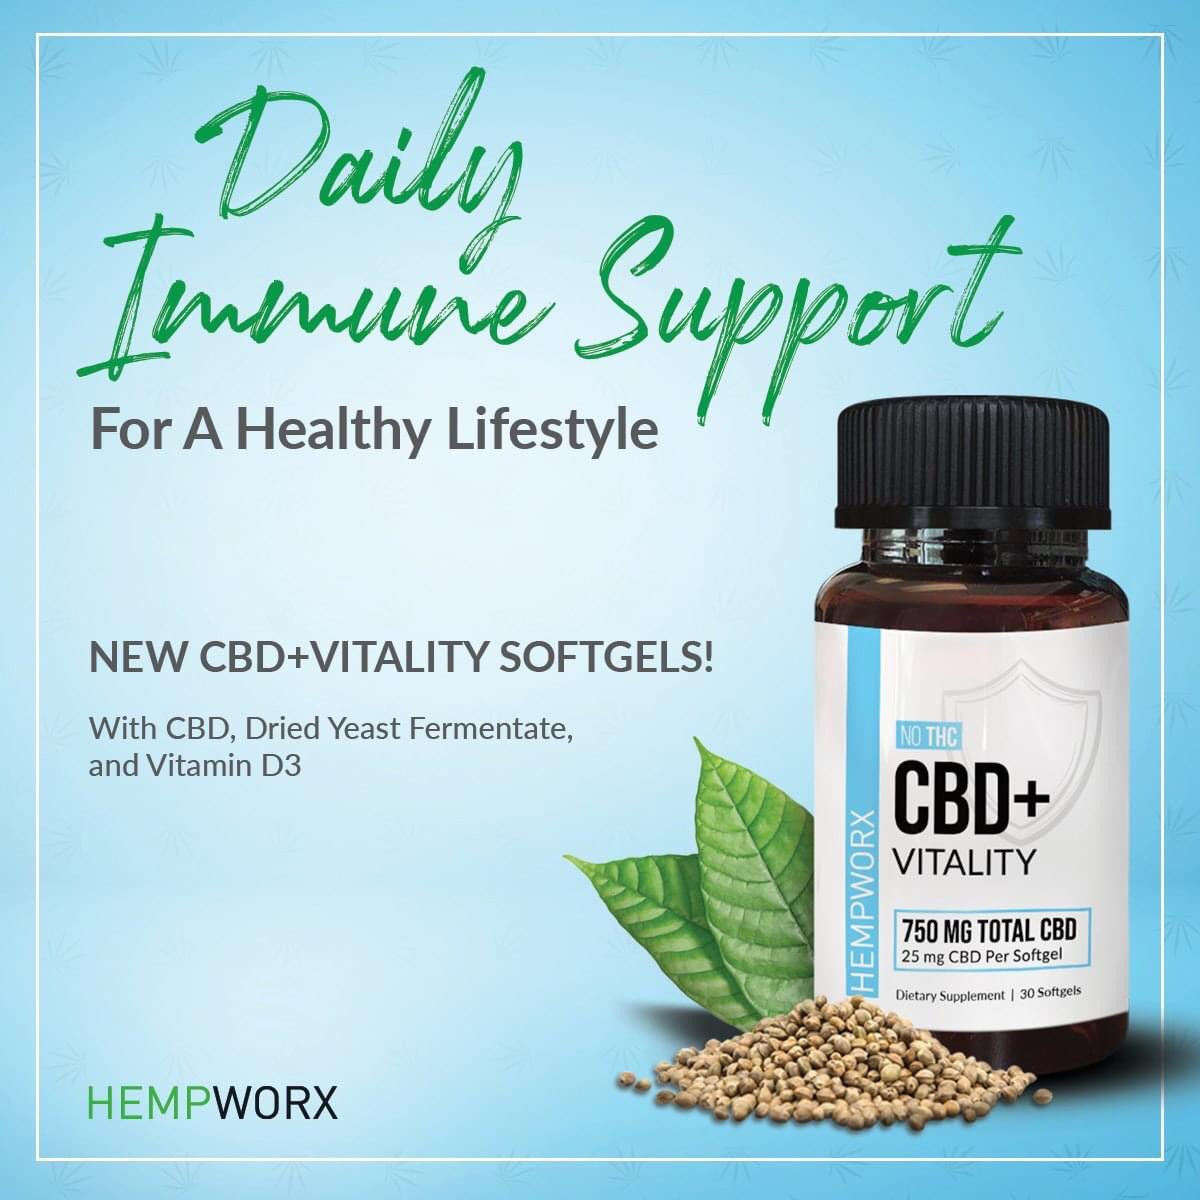 New Product Alert : CBD+Vitality Softgel Formulated for daily immune support, this softgel contains a unique combination of dried yeast fermentate (supports healthy immune function), Vitamin D3 (facilitates the metabolism of calcium and phosphorus) and Broad Spectrum CBD. <br>http://pic.twitter.com/8he35z9hM5